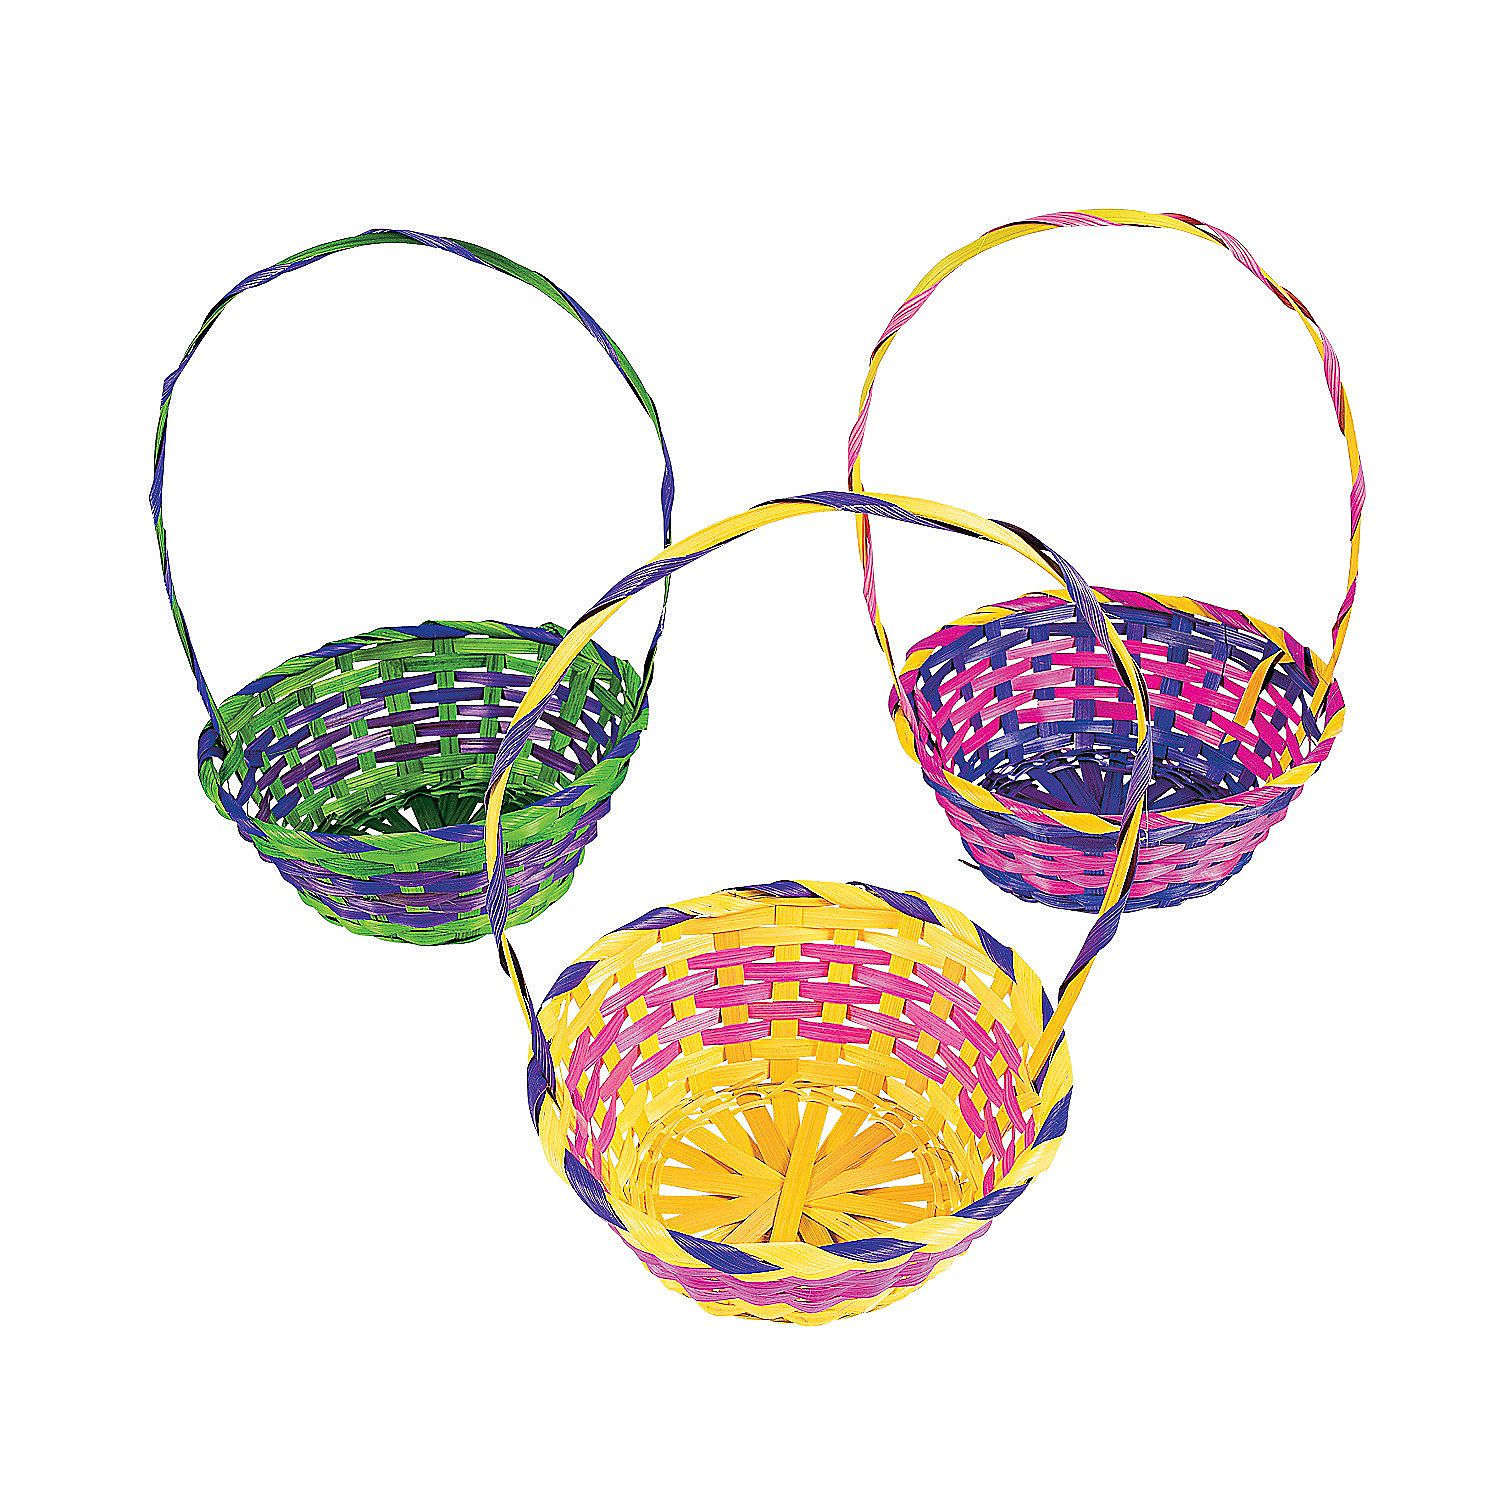 Multicolor round baskets orientaltrading easter goodie bags fill with easter basket stuffers toys and plastic easter eggs their long handles make them easy to carry during the easter egg hunt negle Choice Image